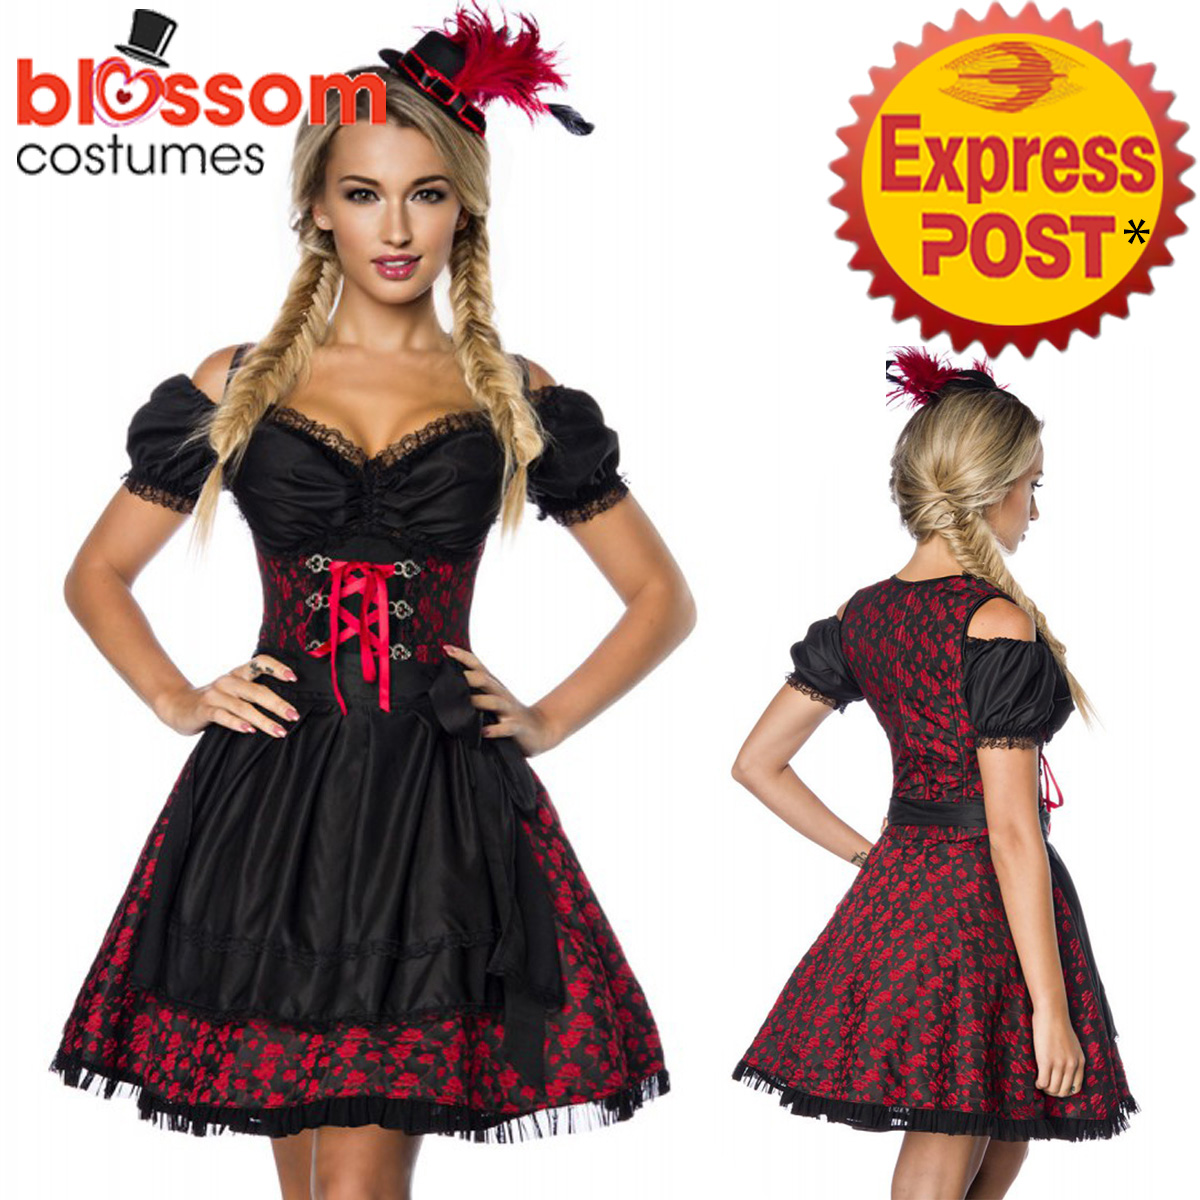 K412 Deluxe Oktoberfest Beer Maid Dress Up Heidi Costume Bavarian German Dirndl | EBay